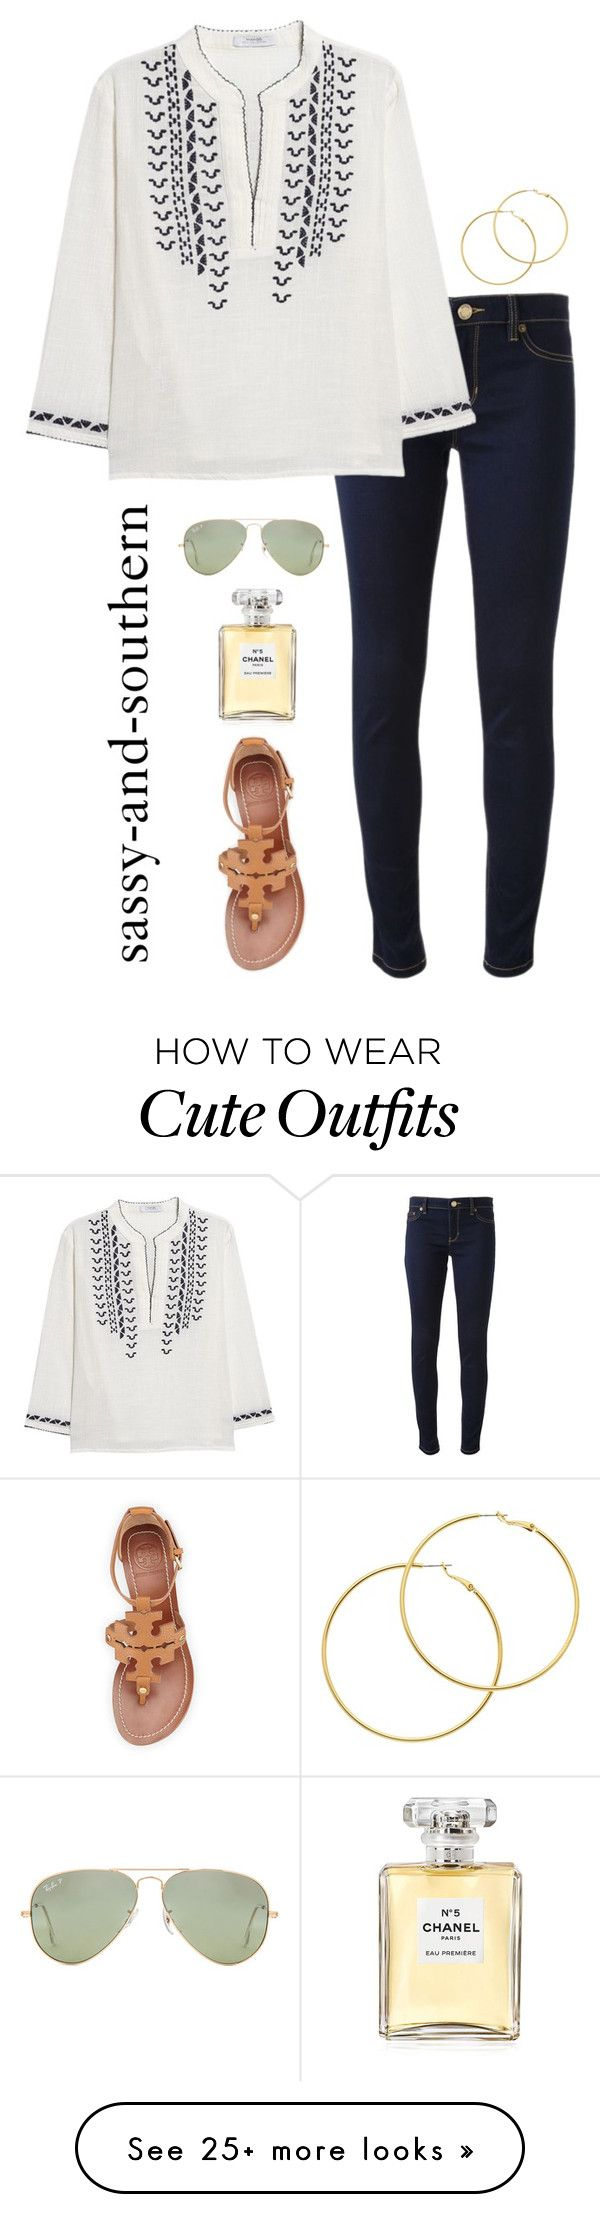 """""""cute dinner outfit"""" by sassy-and-southern on Polyvore featuring Michael Kors, MANGO, Tory Burch, Melissa Odabash, Chanel, Ray-Ban and ToryBurch"""